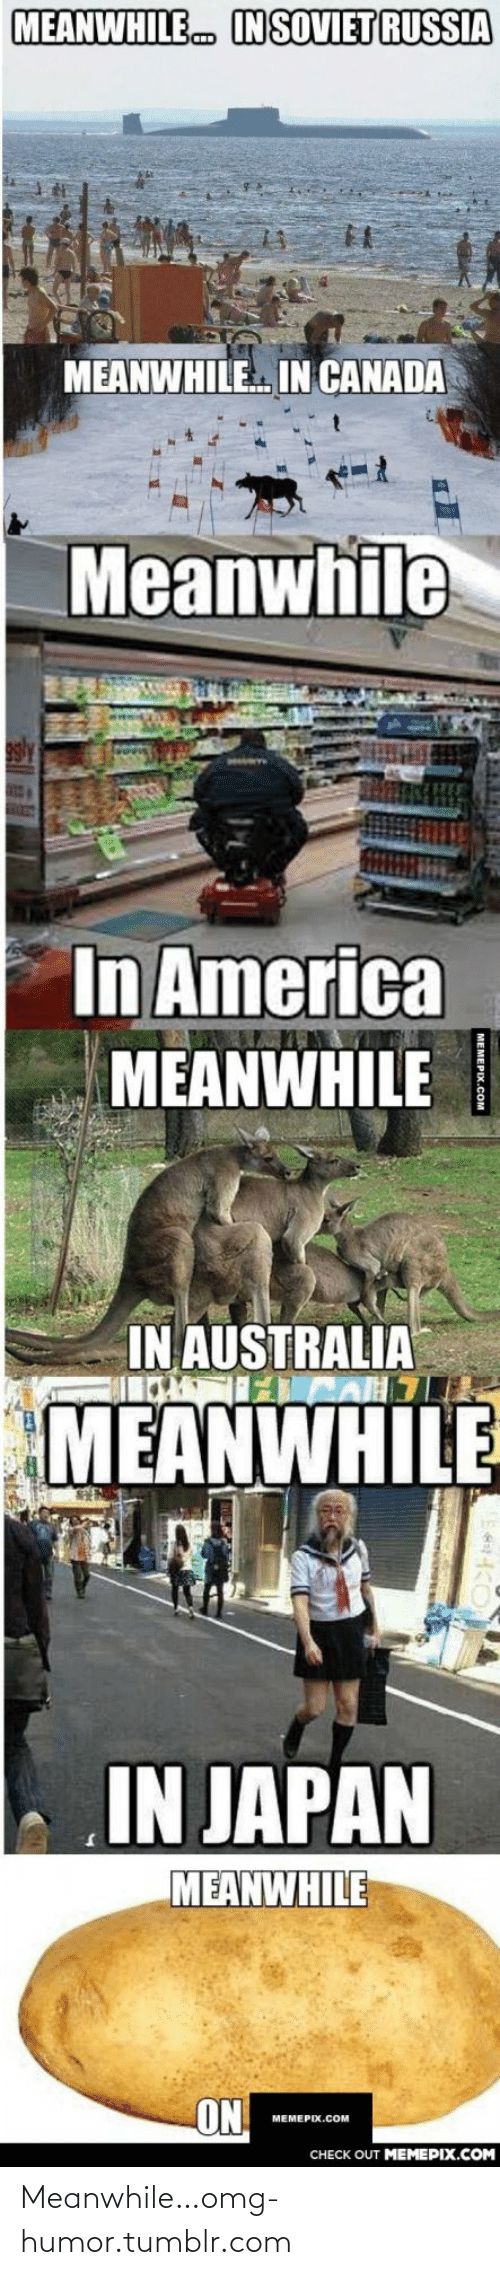 in soviet russia: MEANWHILE  IN SOVIET RUSSIA  MEANWHILE IN CANADA  Meanwhile  In America  MEANWHILE  IN AUSTRALIA  MEANWHILE  IN JAPAN  MEANWHILE  ON  МЕМЕРIХ.COм  CHECK OUT MEMEPIX.COM Meanwhile…omg-humor.tumblr.com